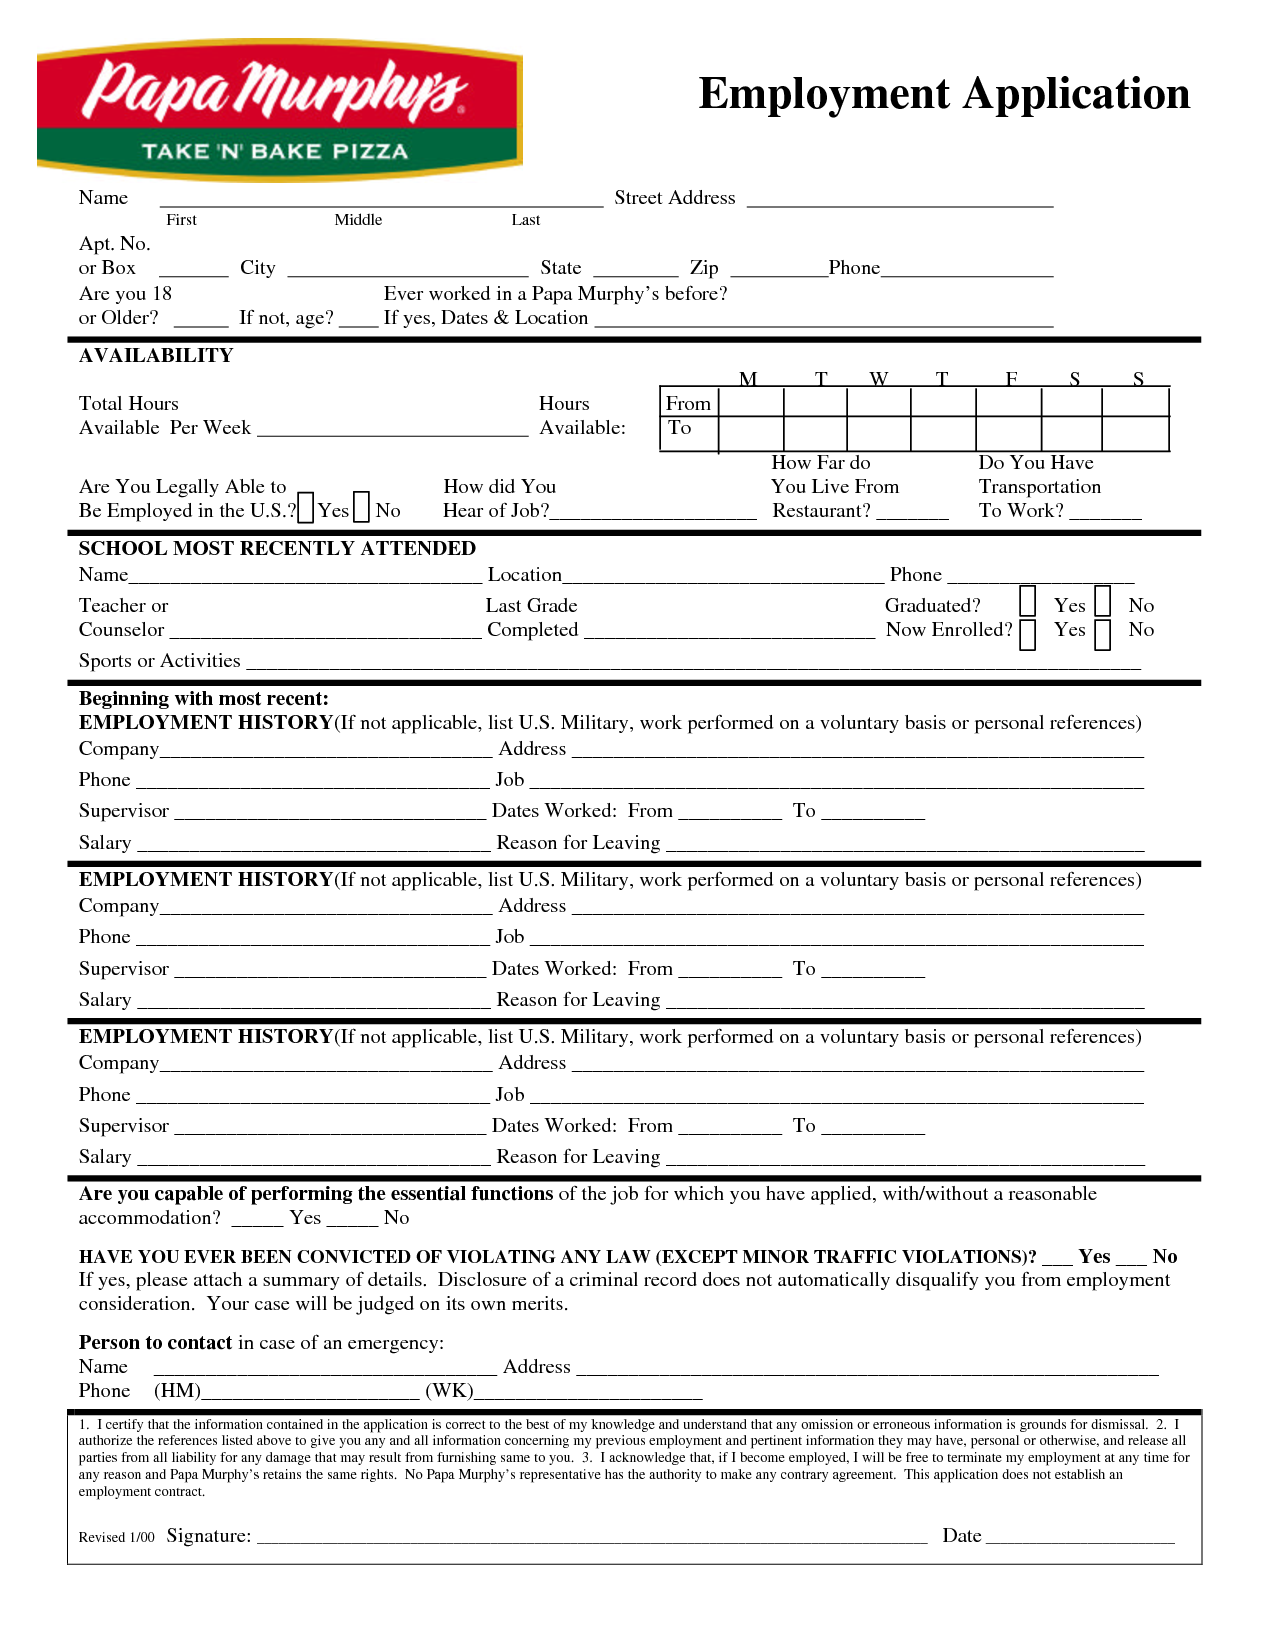 Papa MurphyS Application Print Out  Papa MurphyS Employment